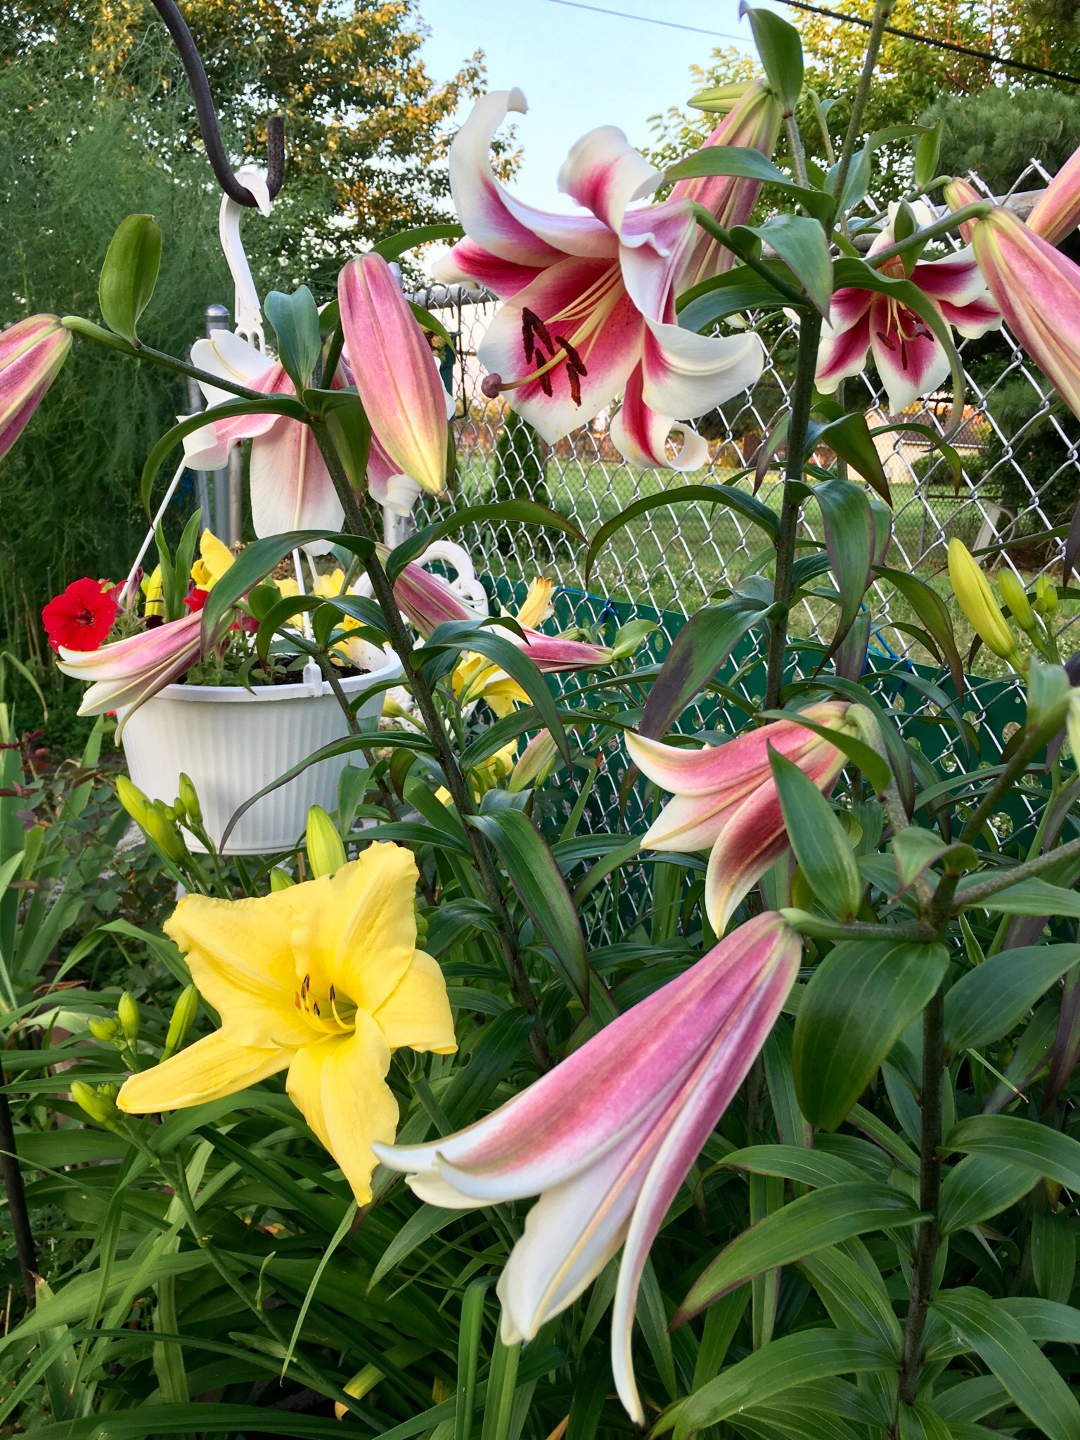 lilies and daylilies